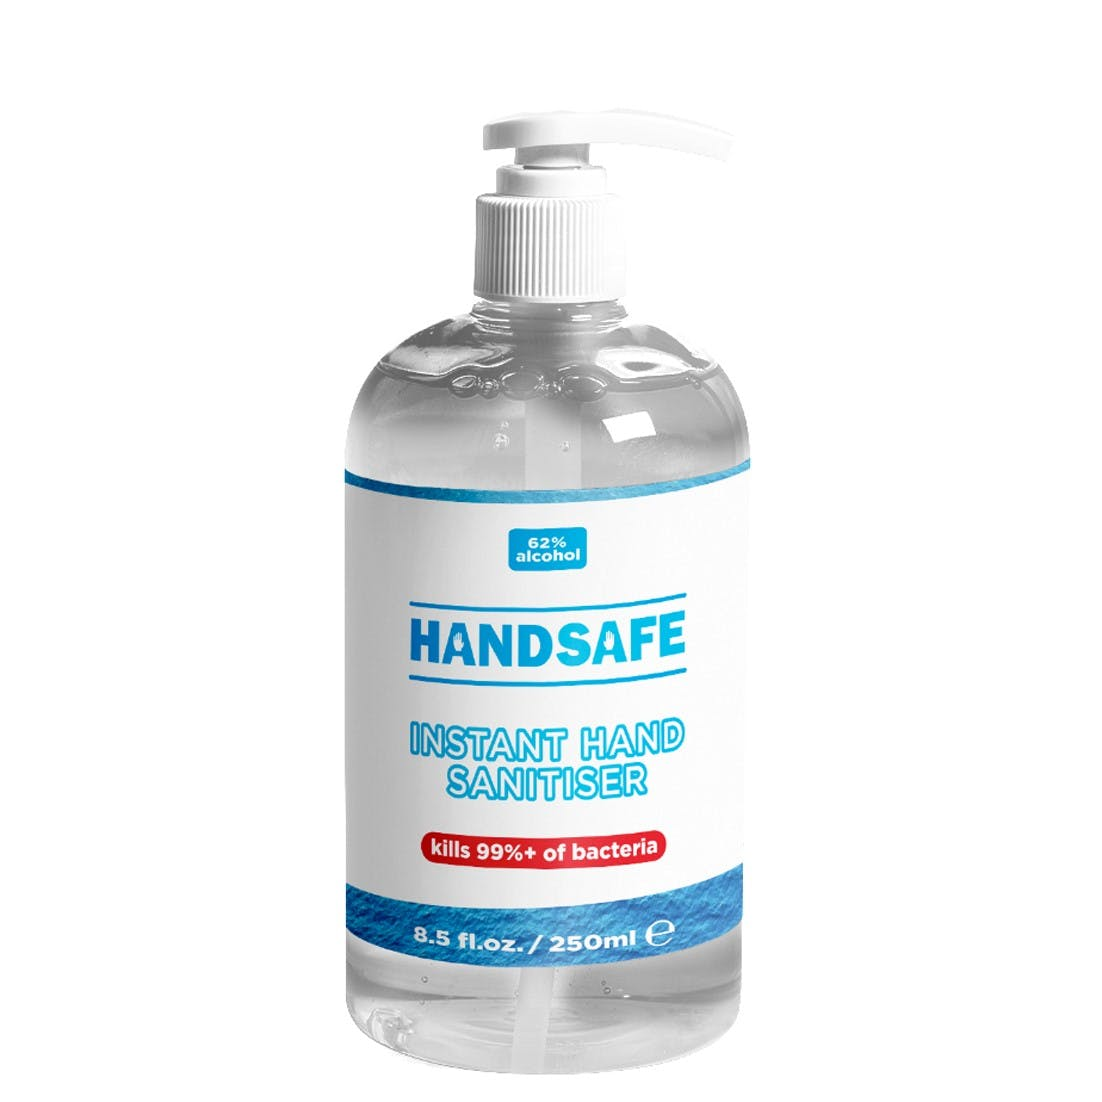 HandSafe 62% Alcohol 250ml Hand Sanitiser